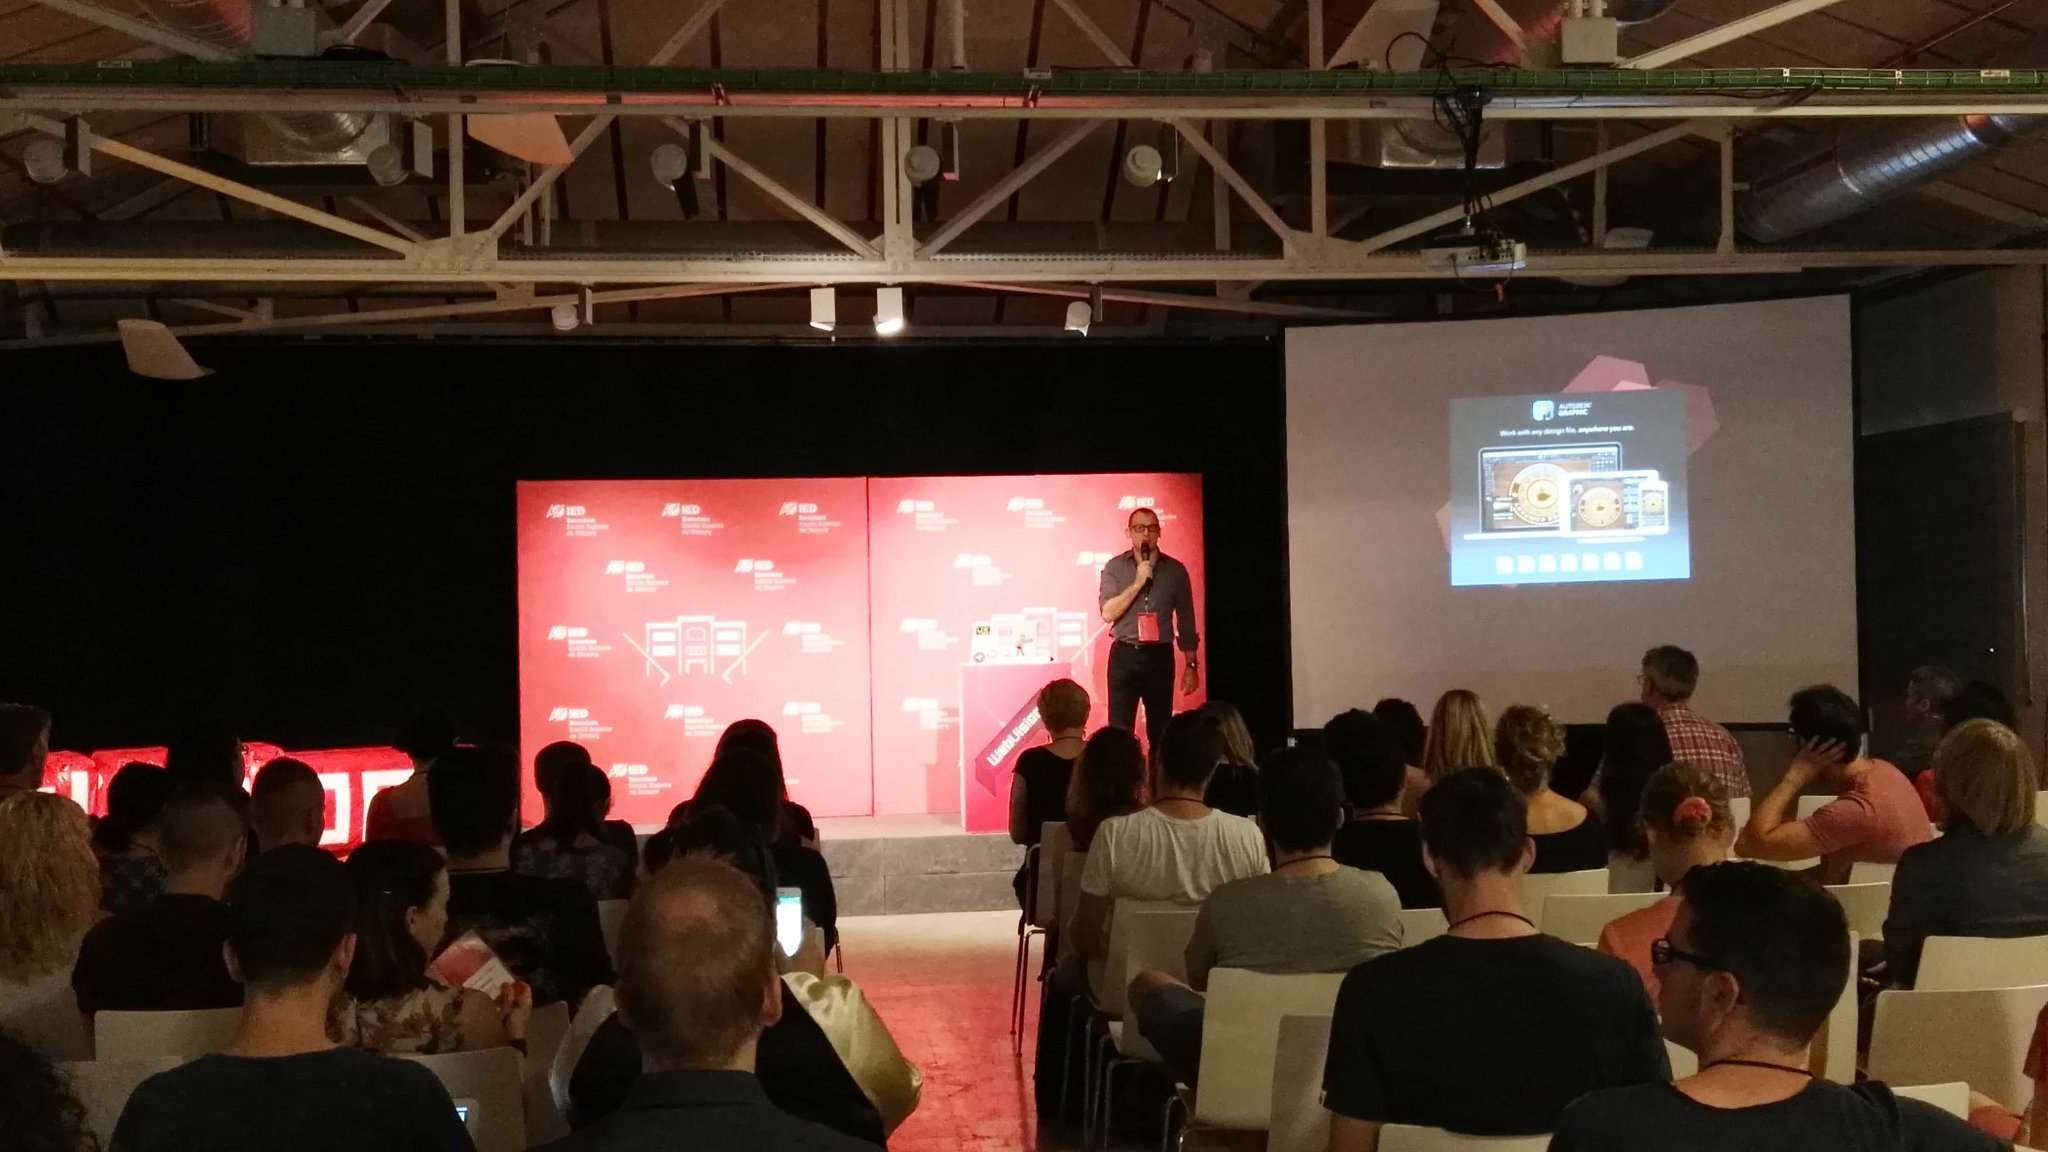 #Webvisions  conference barcelona starting, oh yeah! https://t.co/mMiWccl9ze